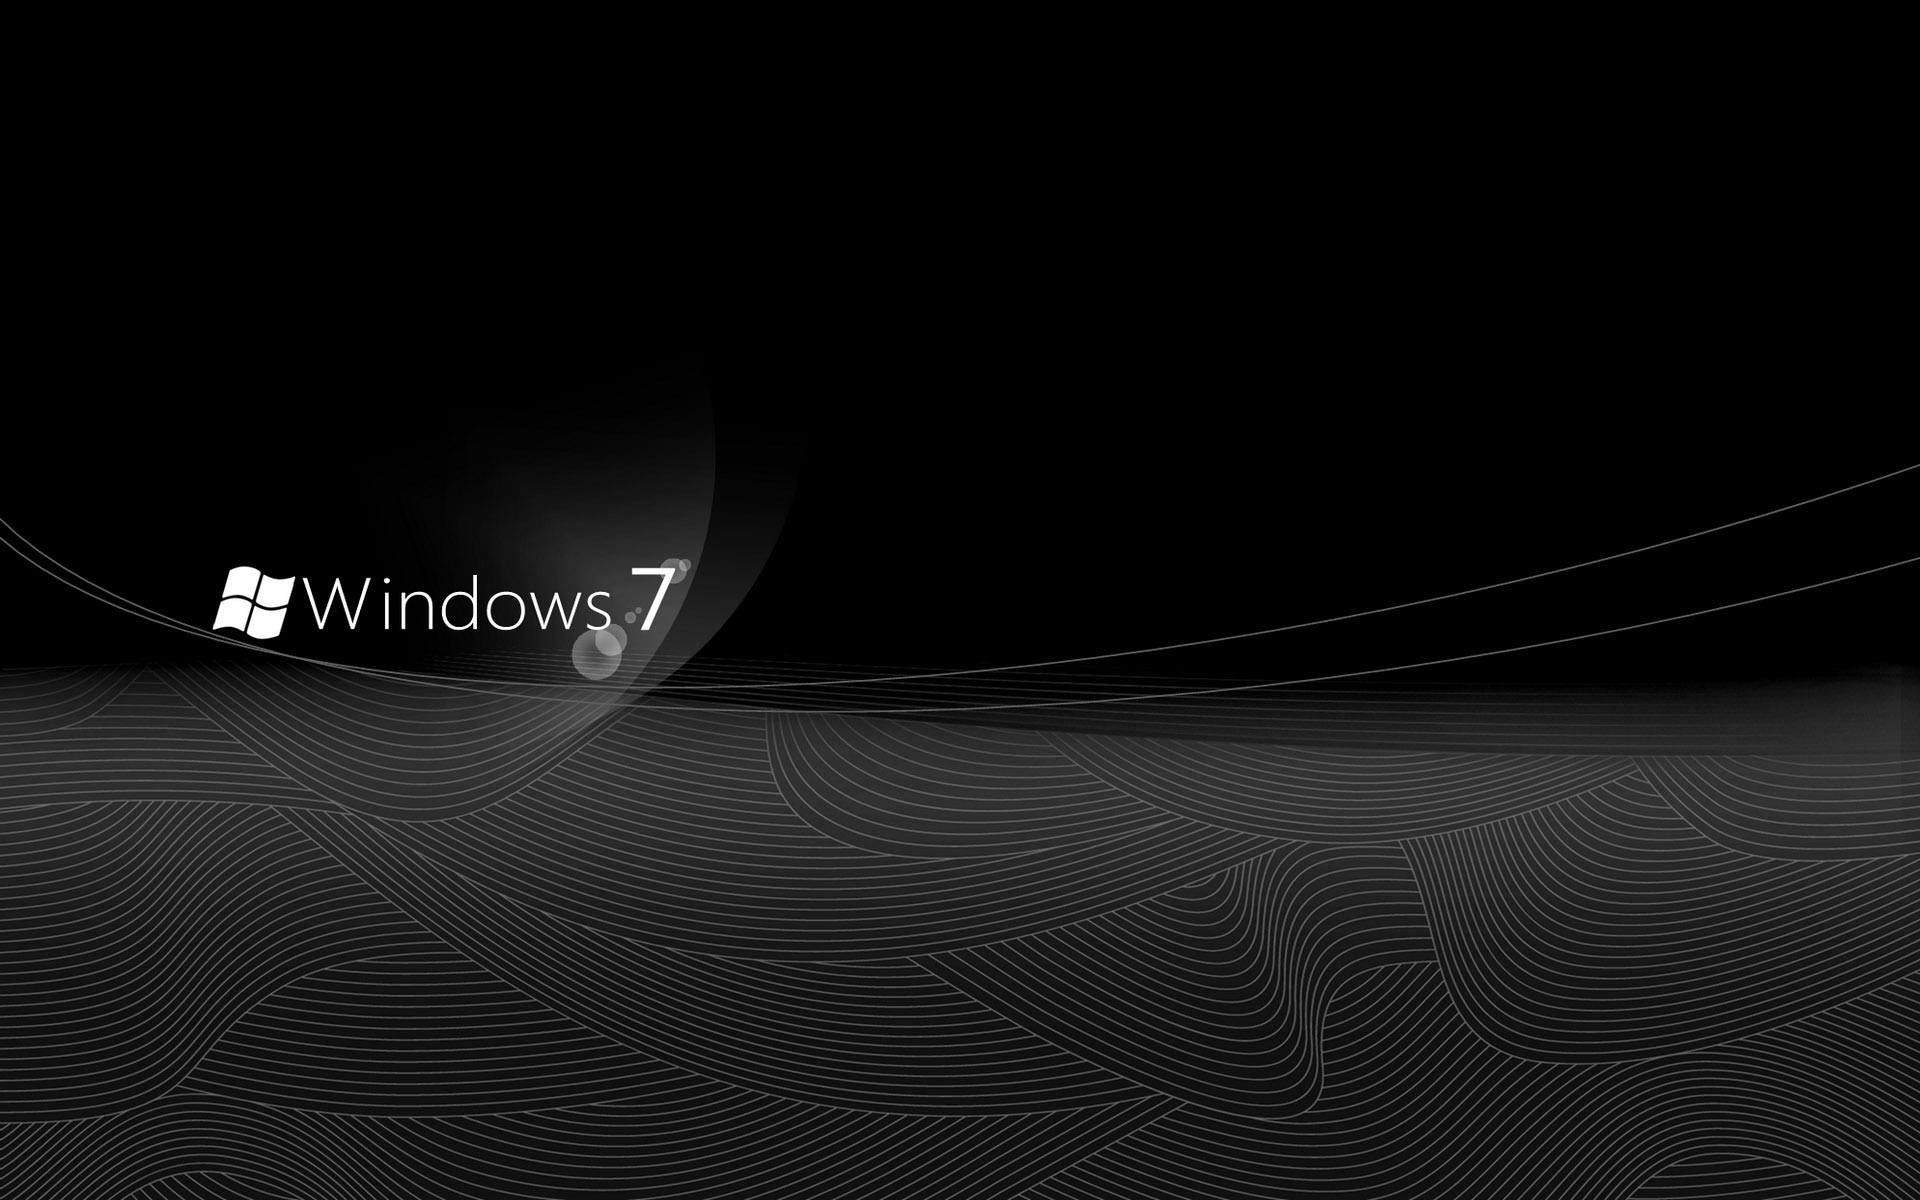 Wallpaper Computers Windows 7 Elegant black widescreen wallpaper 1920x1200